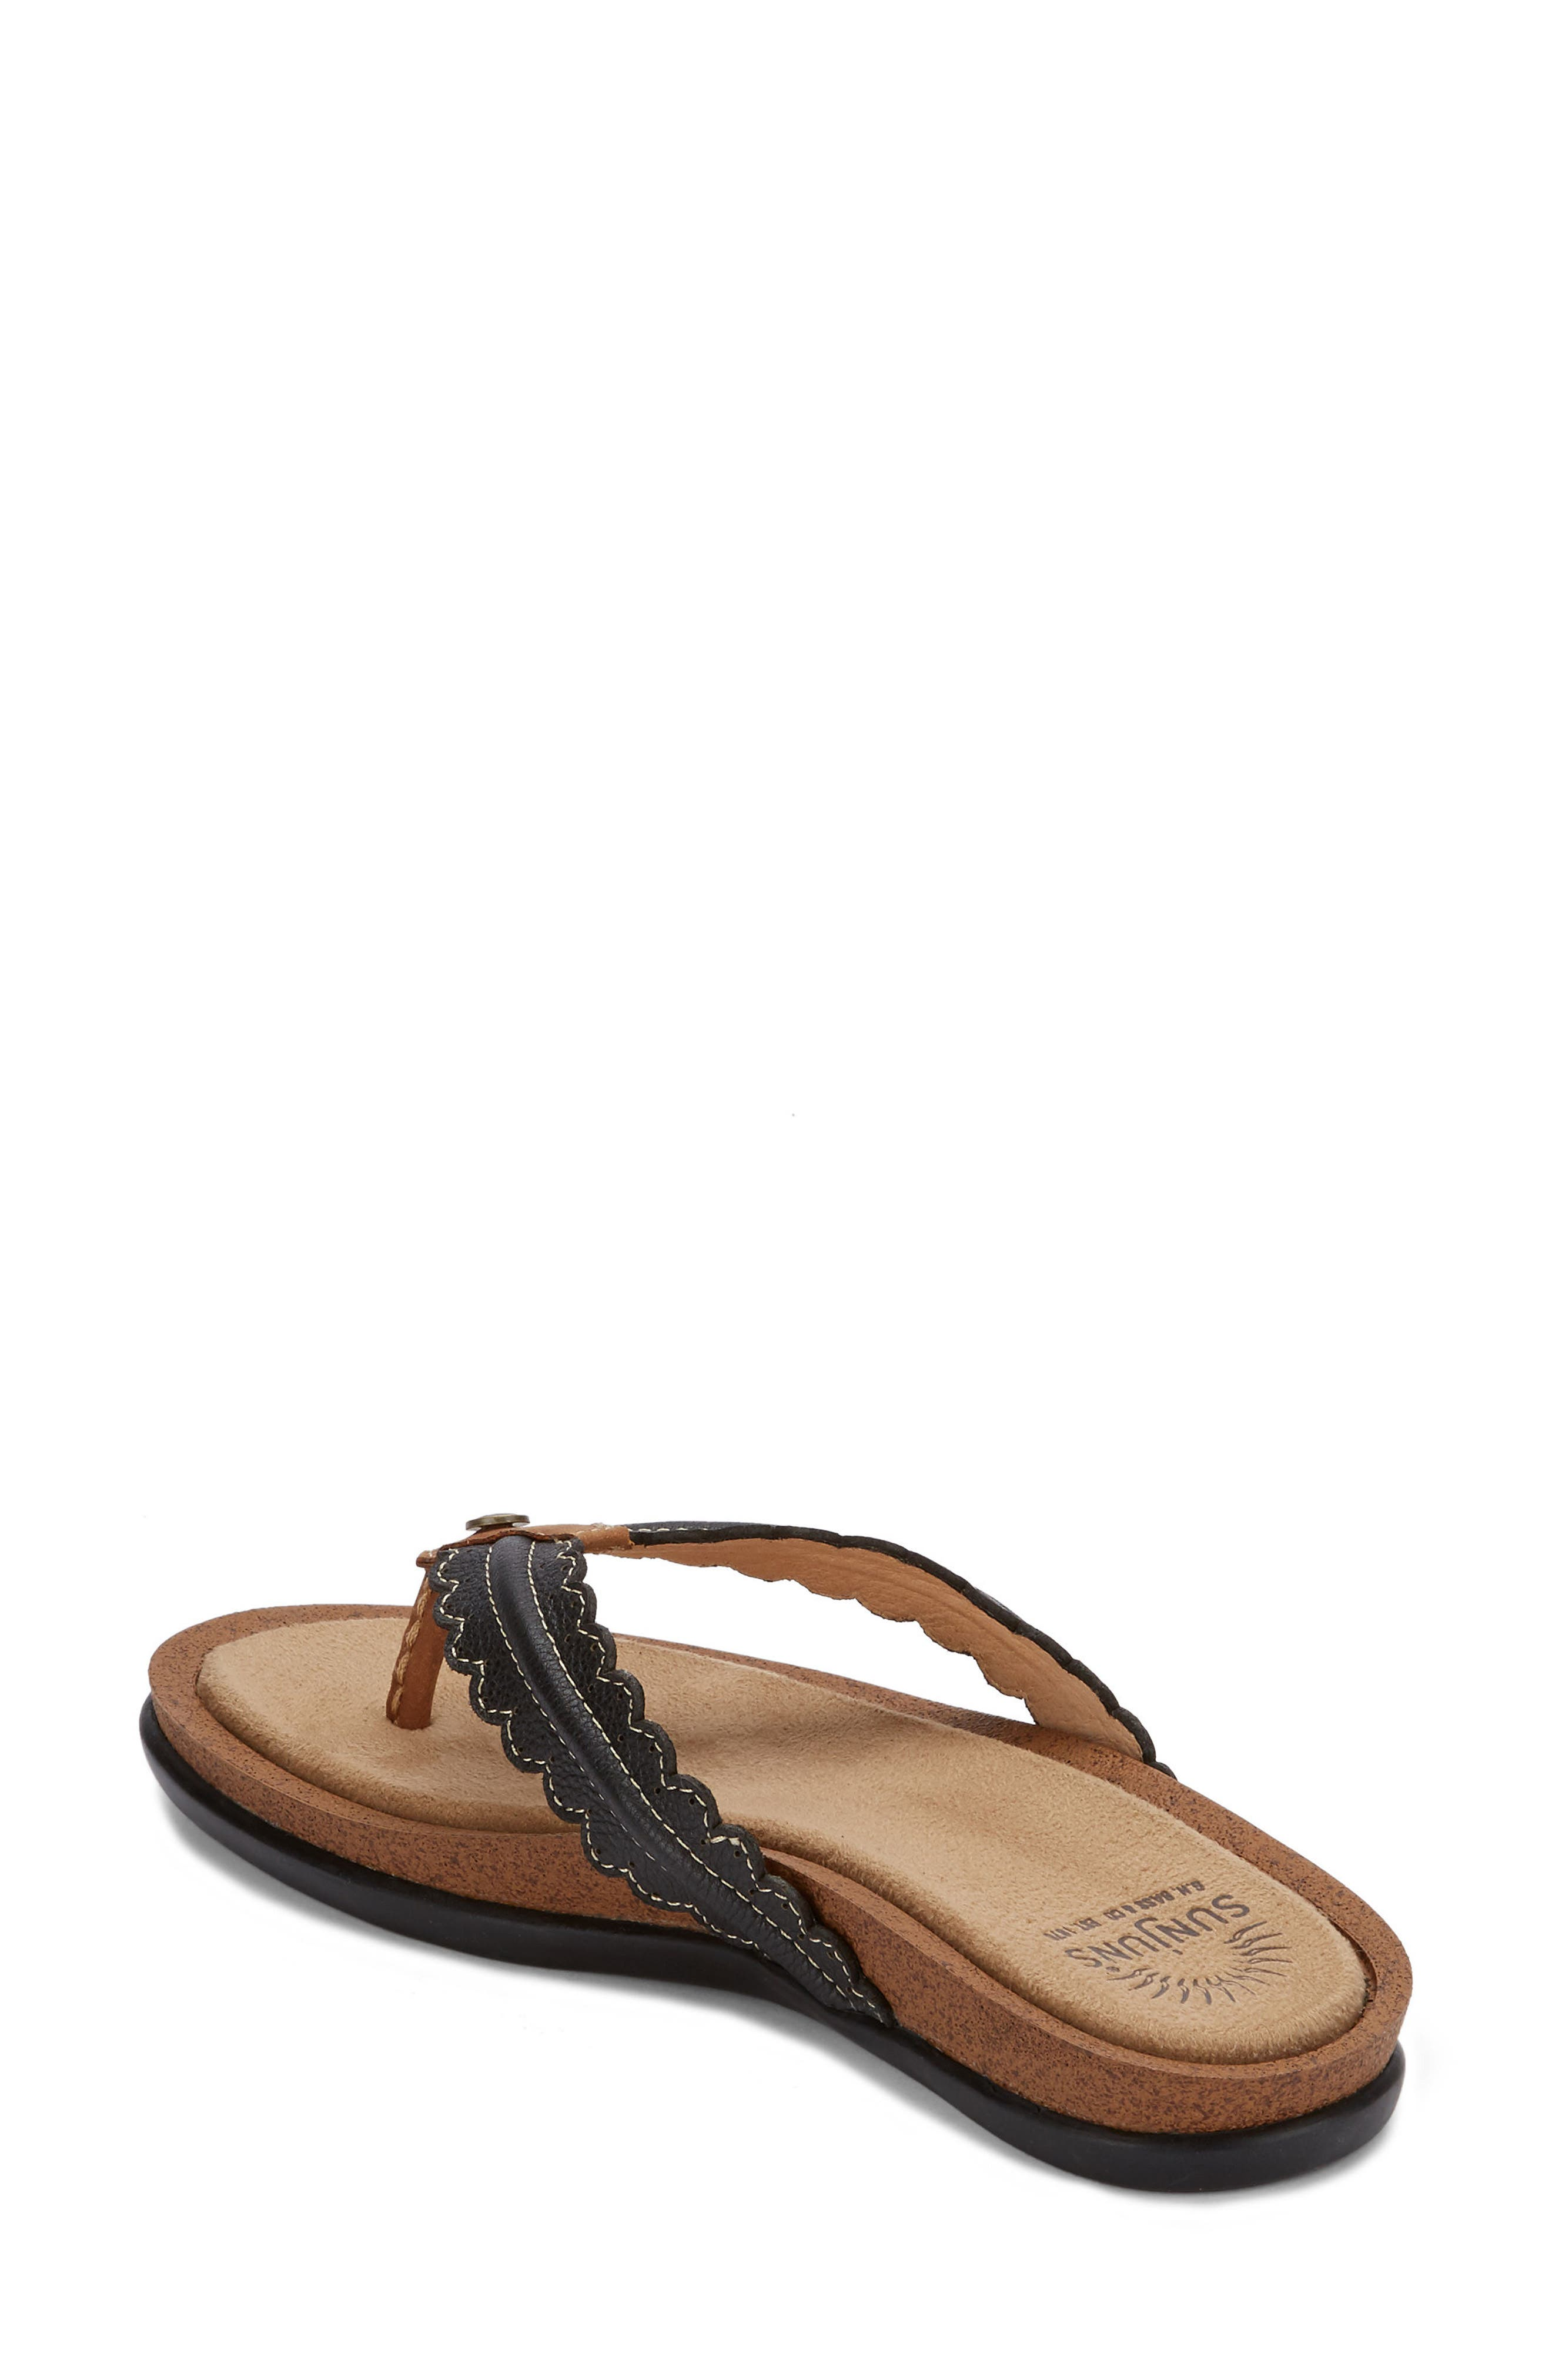 G.H. Bass and Co. Samantha Thong Sandal,                             Alternate thumbnail 6, color,